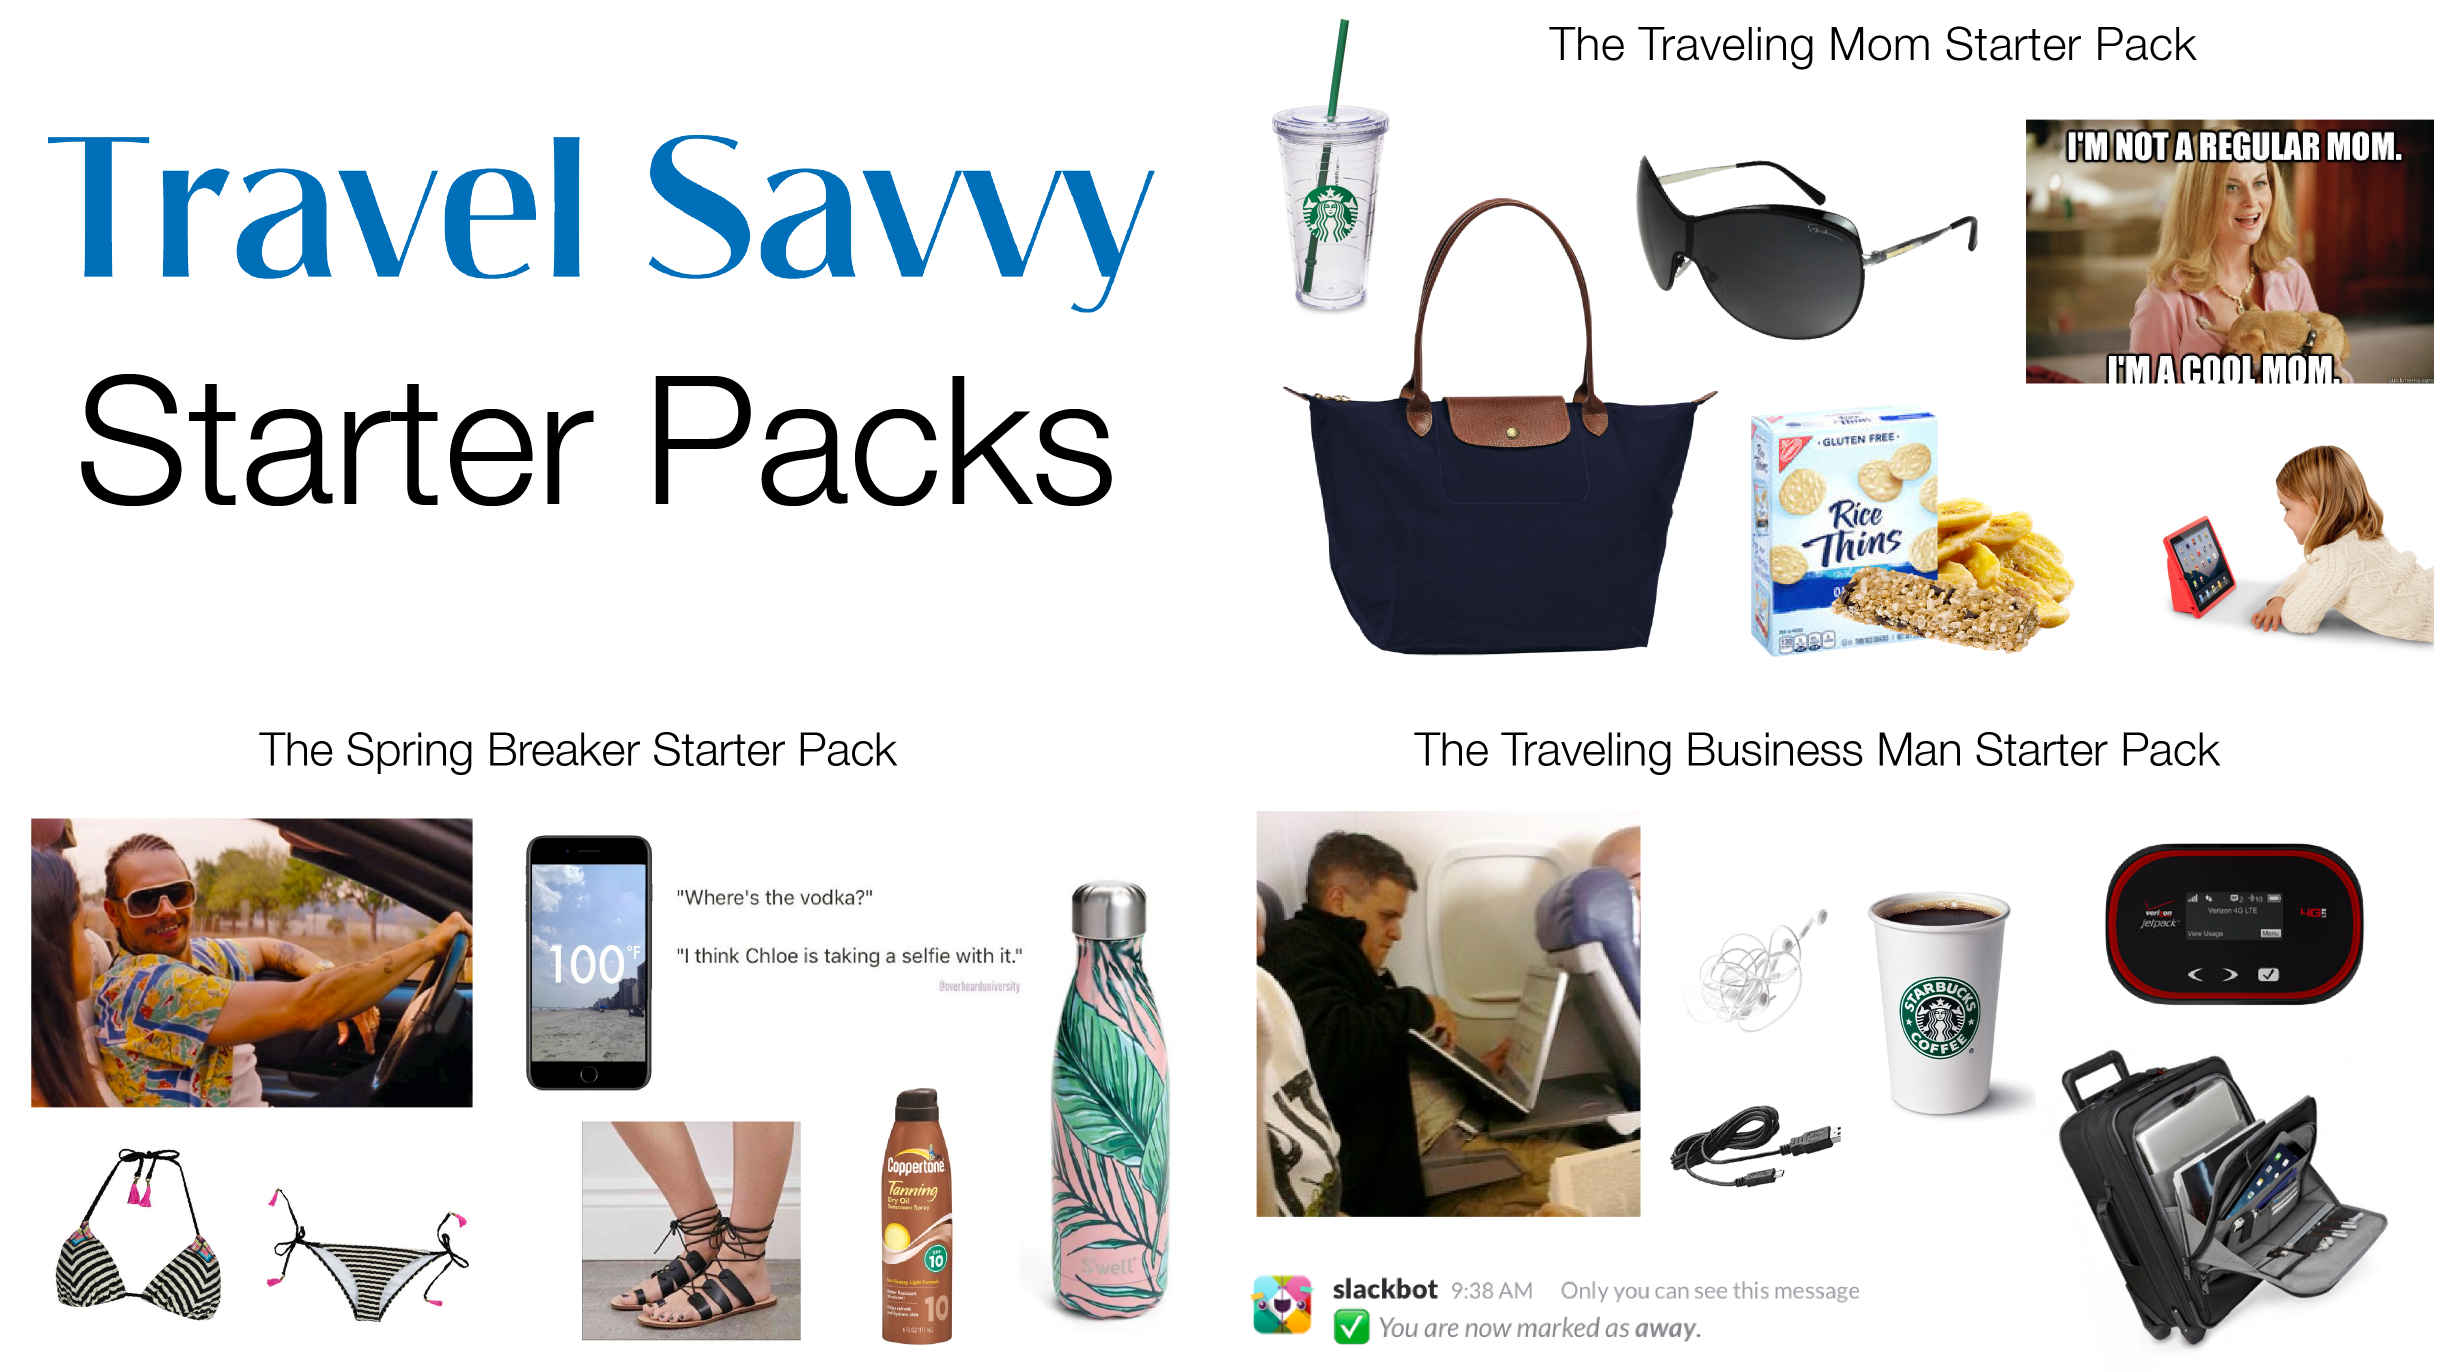 Travel Savvy Starter Packs for Every Type of Traveler